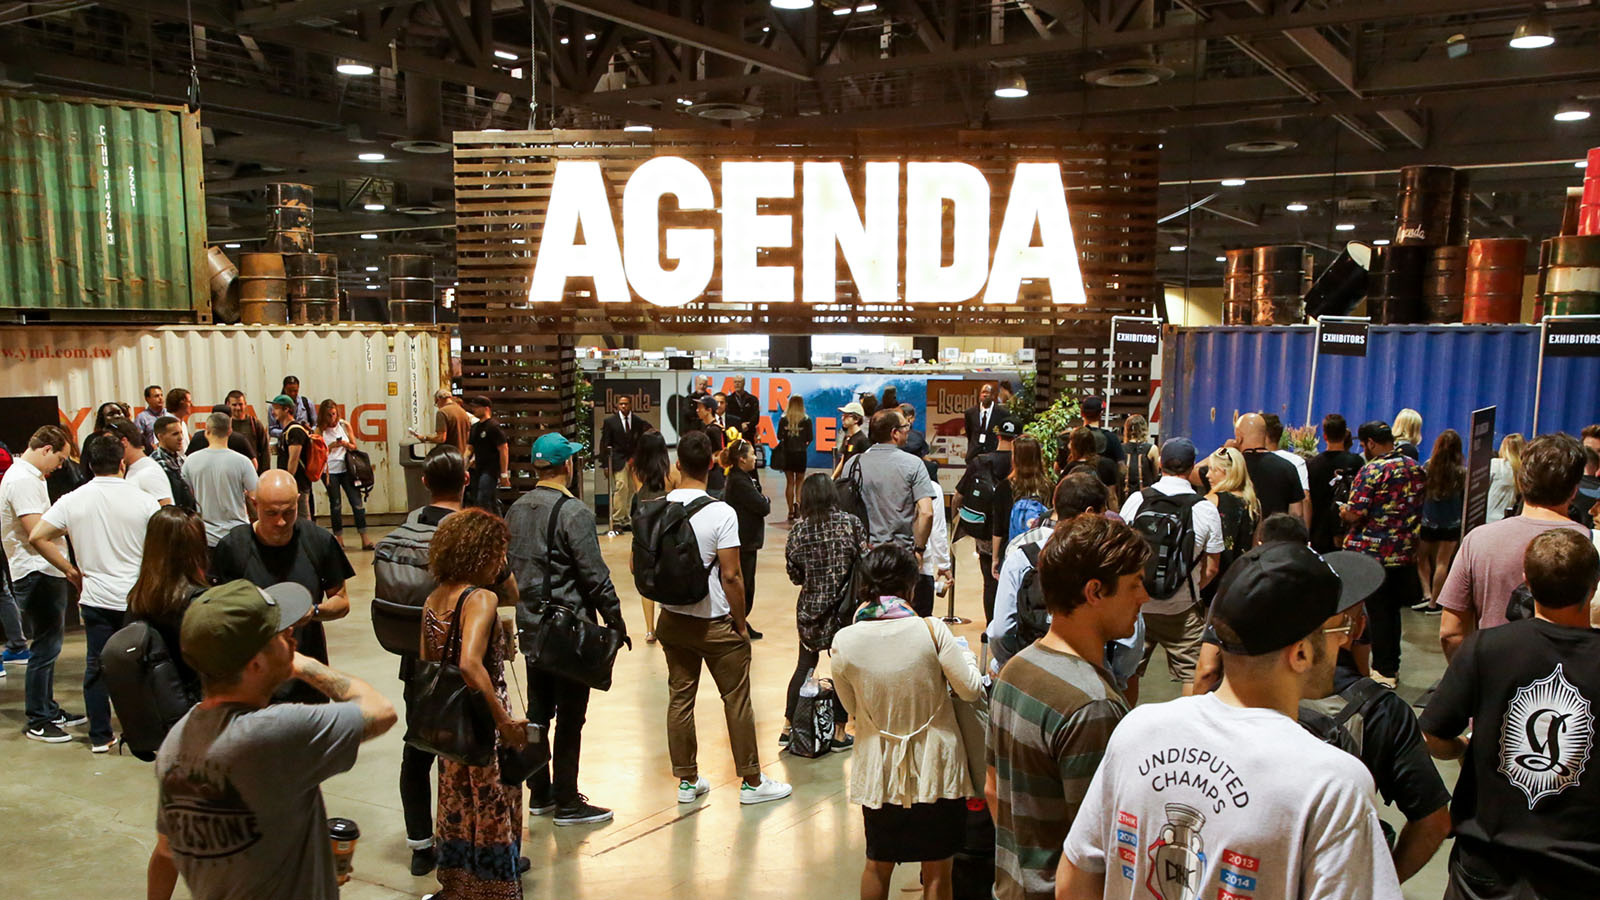 11 Amazing Event Booths from the Agenda Festival